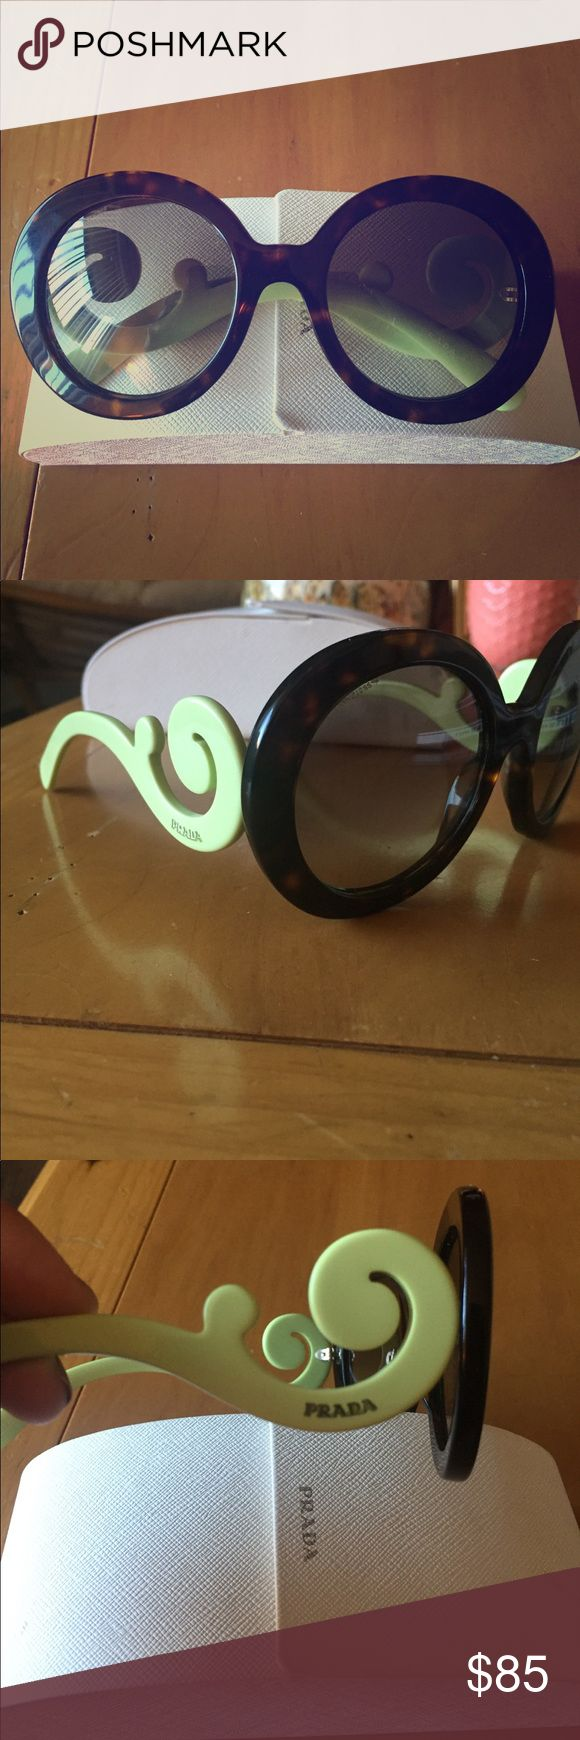 Tortoise and light green Prada baroque sunglasses One very small unnoticeable scratch on lens. I've only worn these a few times so they're in great shape! Comes with Prada case. Prada Accessories Sunglasses